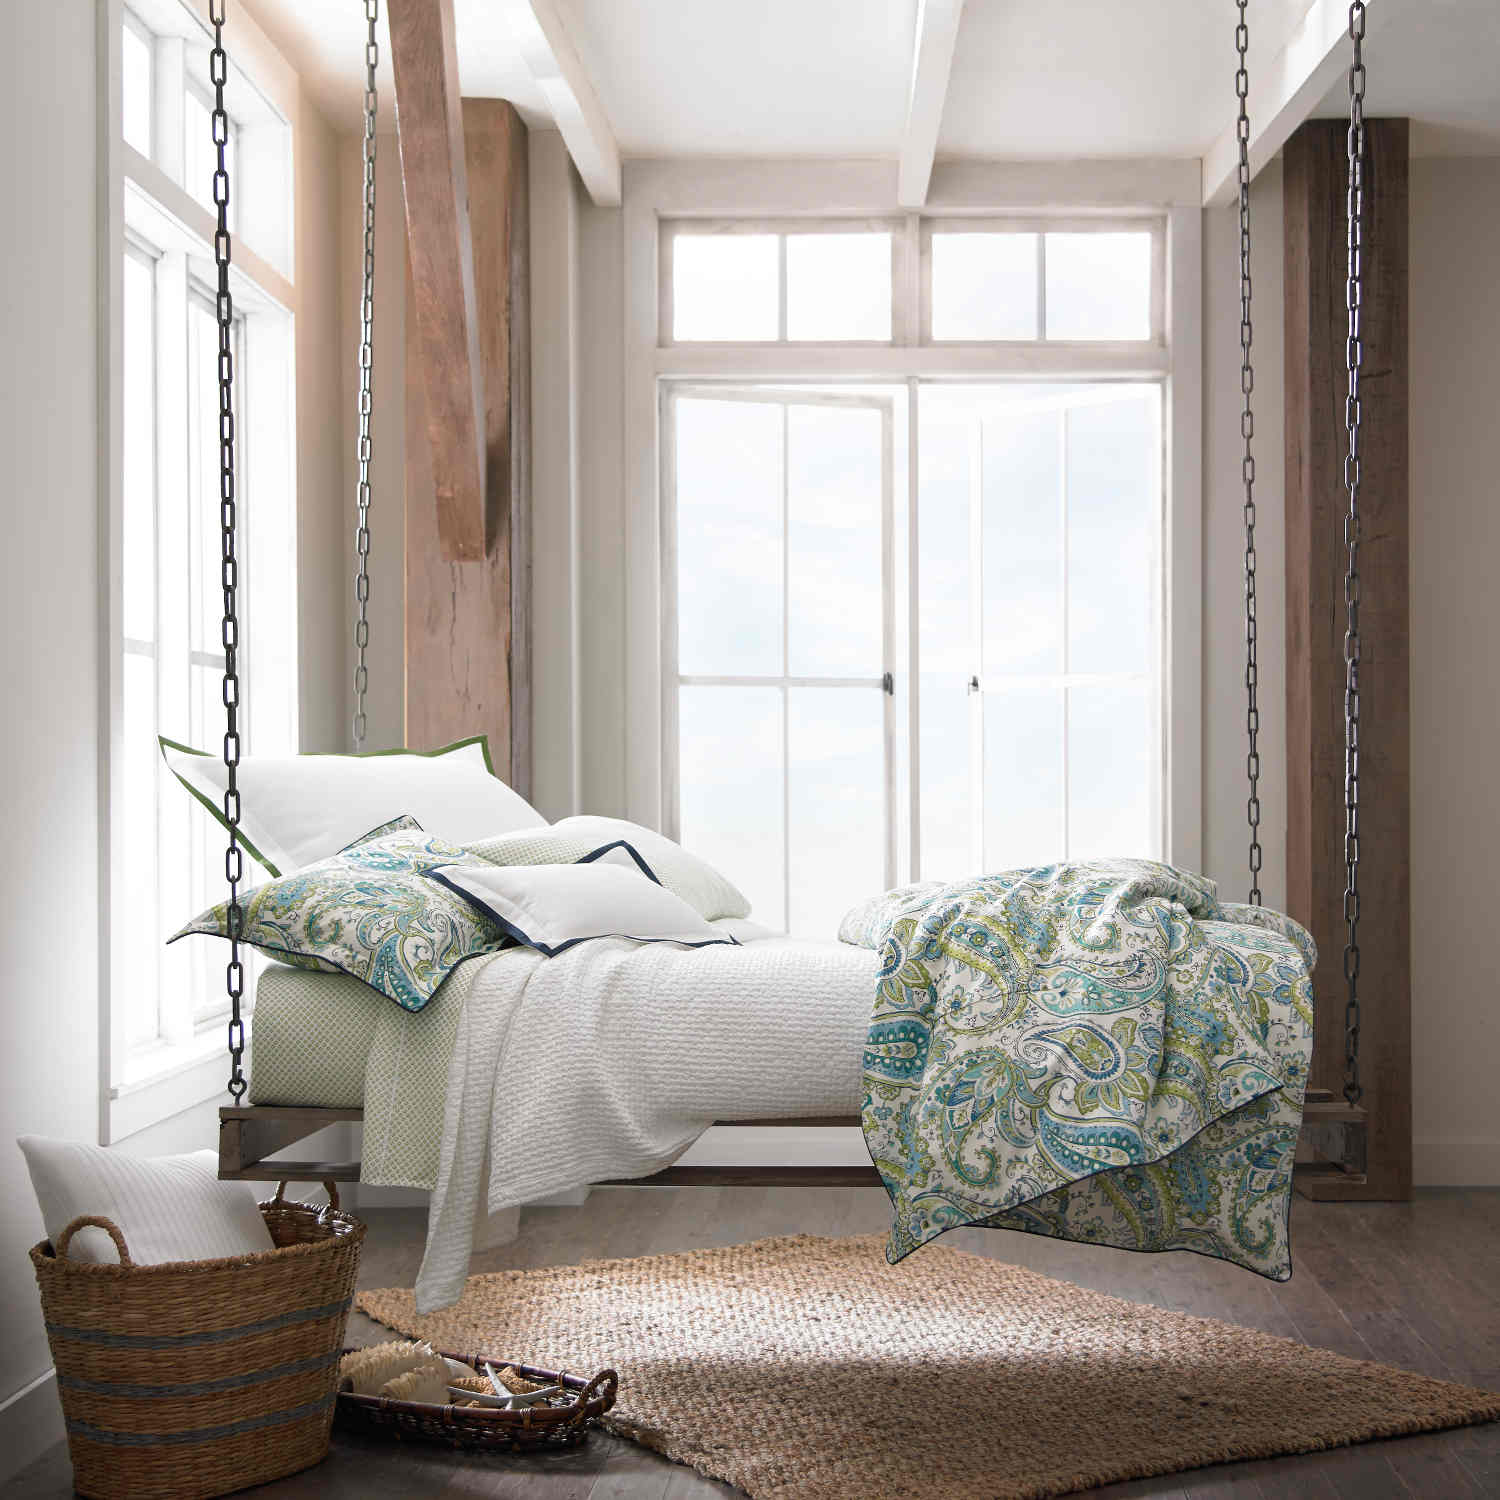 Peacock Bedding | Peacock Feather Duvet Cover | Trina Turk Peacock Bedding